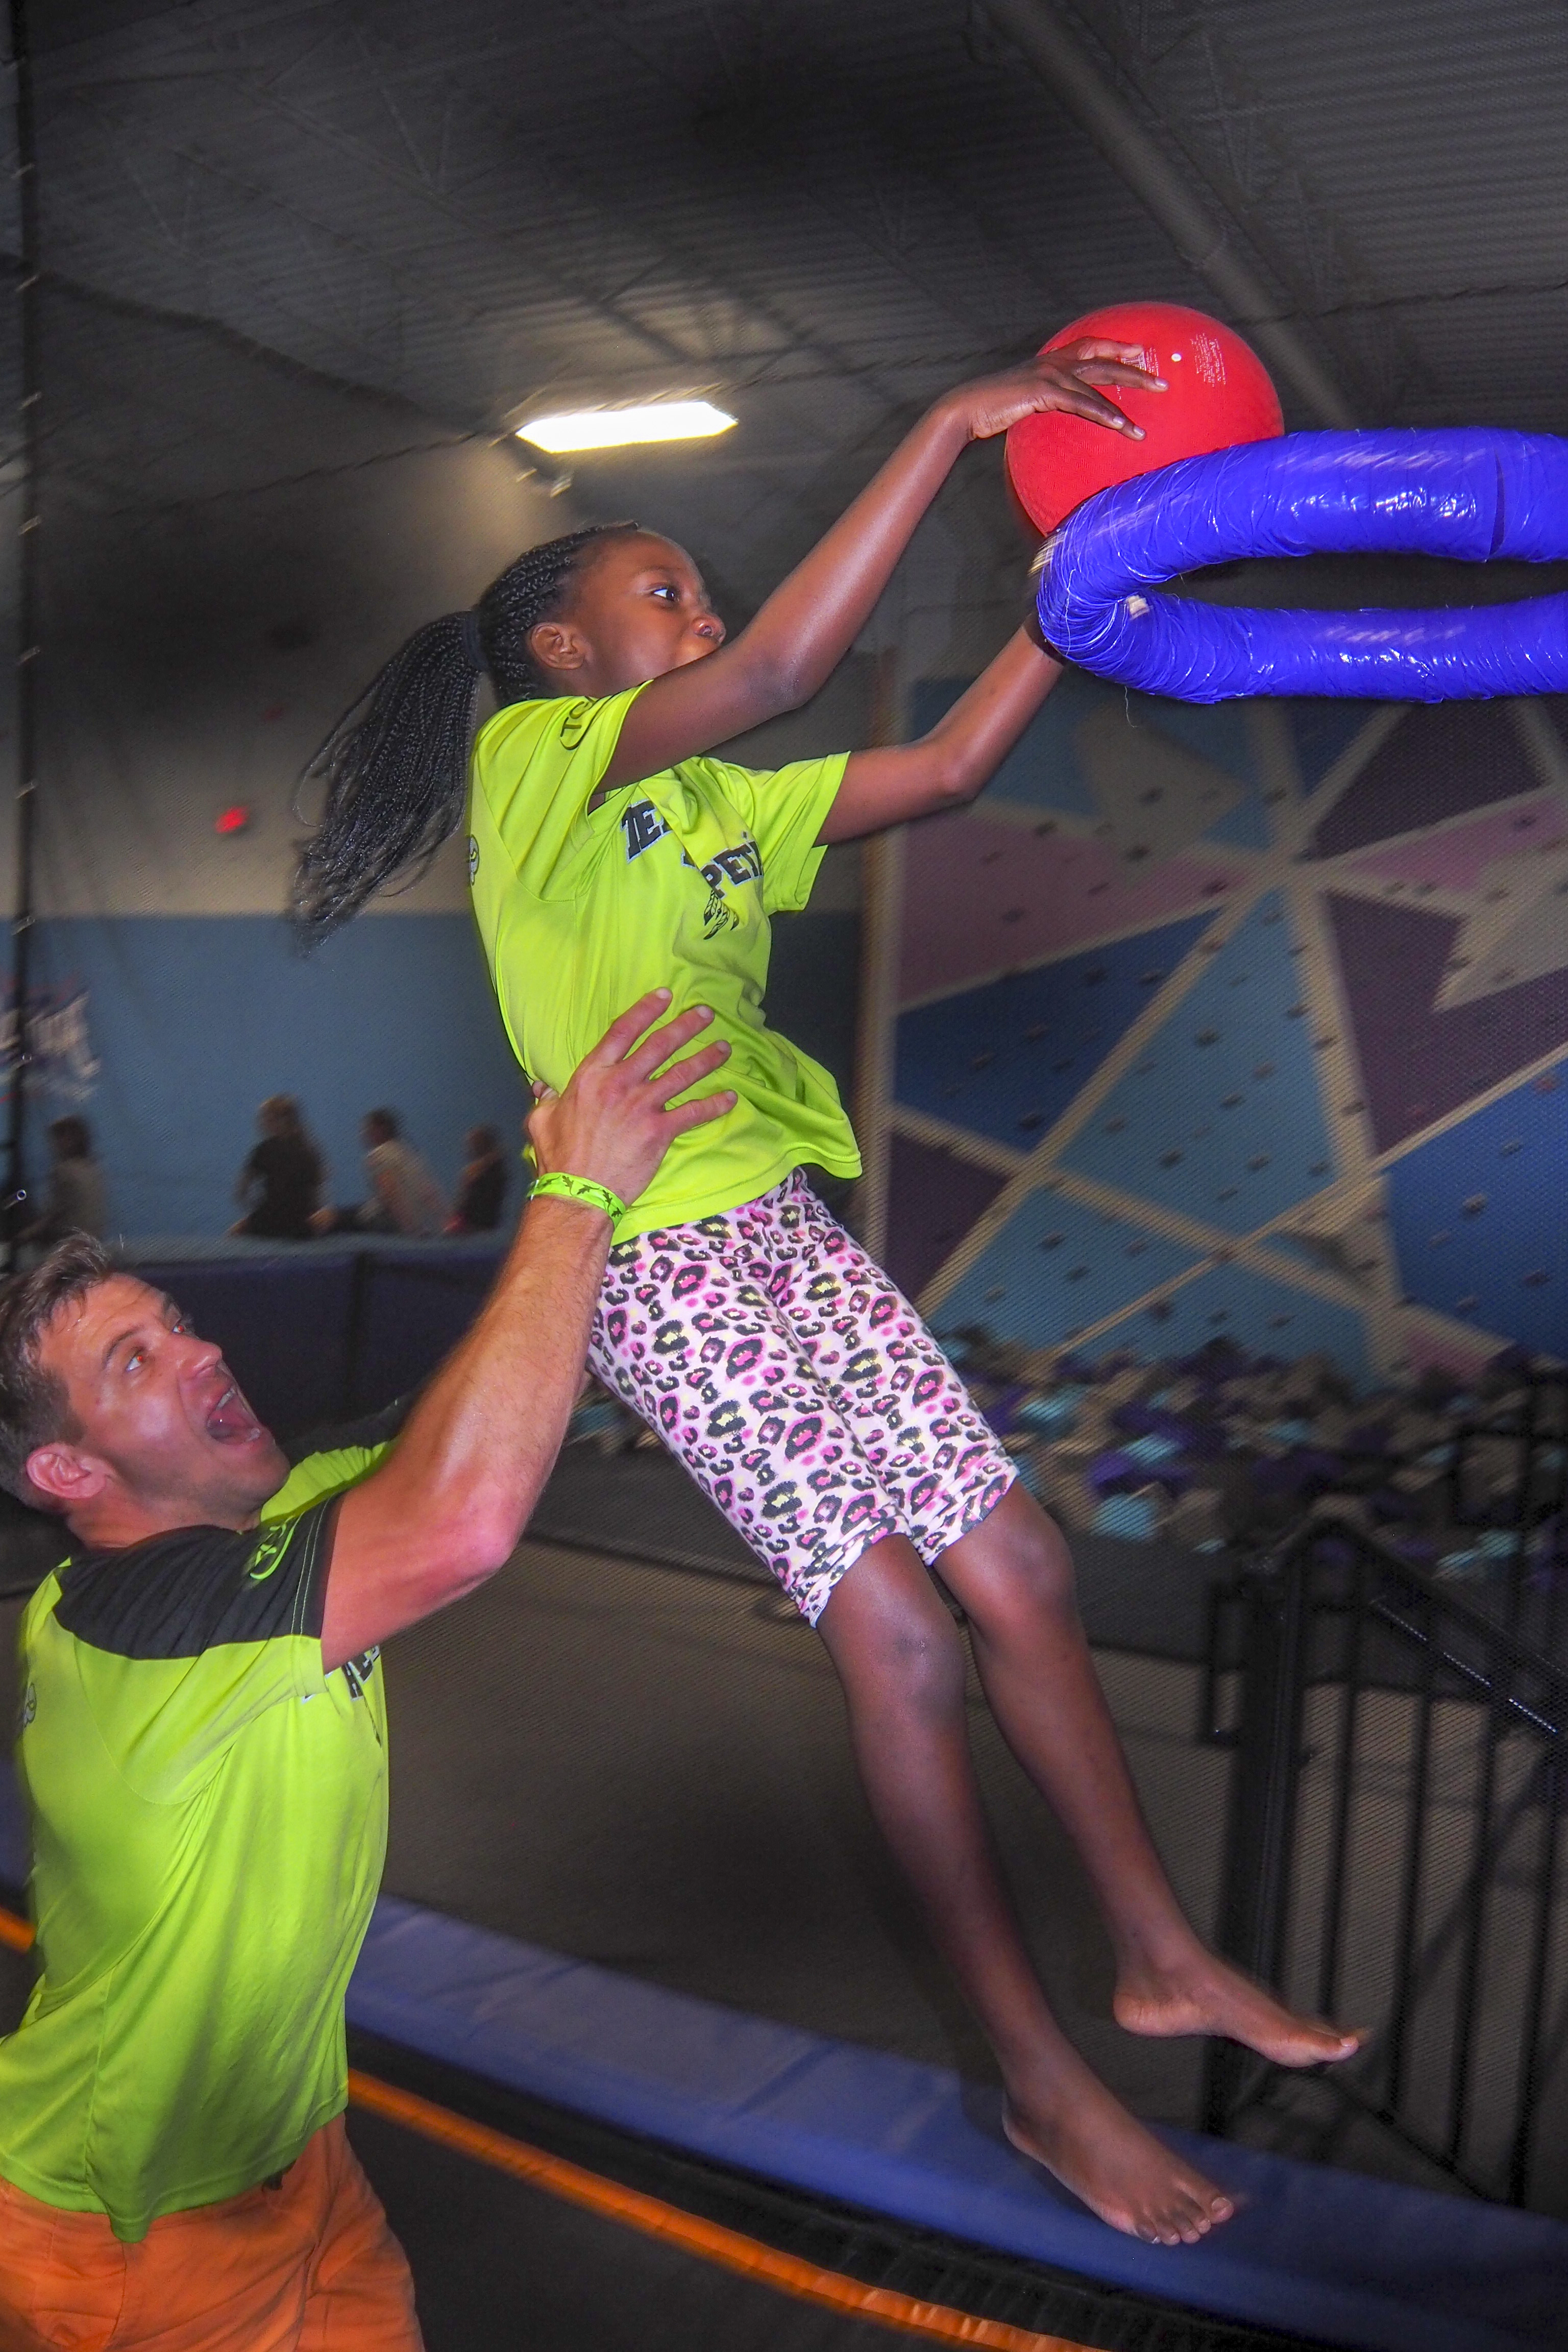 Young girl getting a lift on dunking a basketball